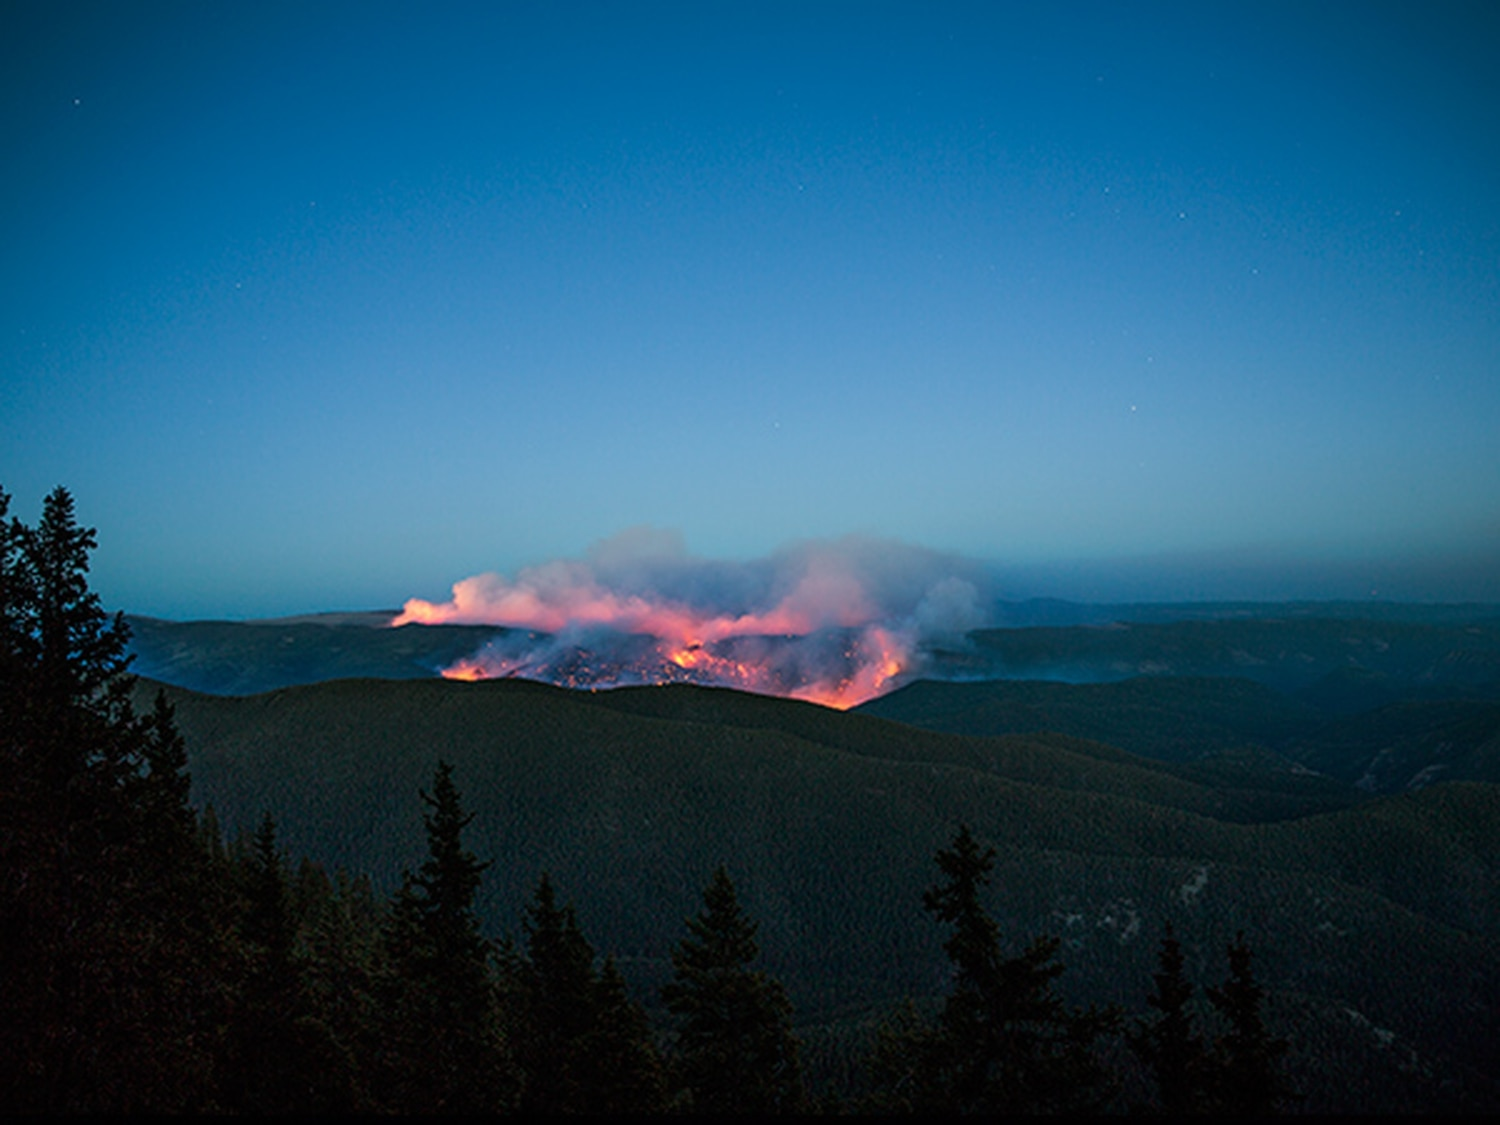 Photographer Ryan Heffernan's time-elapse photos of the Tres Lagunas Fire near Pecos were taken on May 31, the day the fire started. Fanned by wind and hot temperatures, it burned more than 10,000 acres before firefighters were able to contain it.